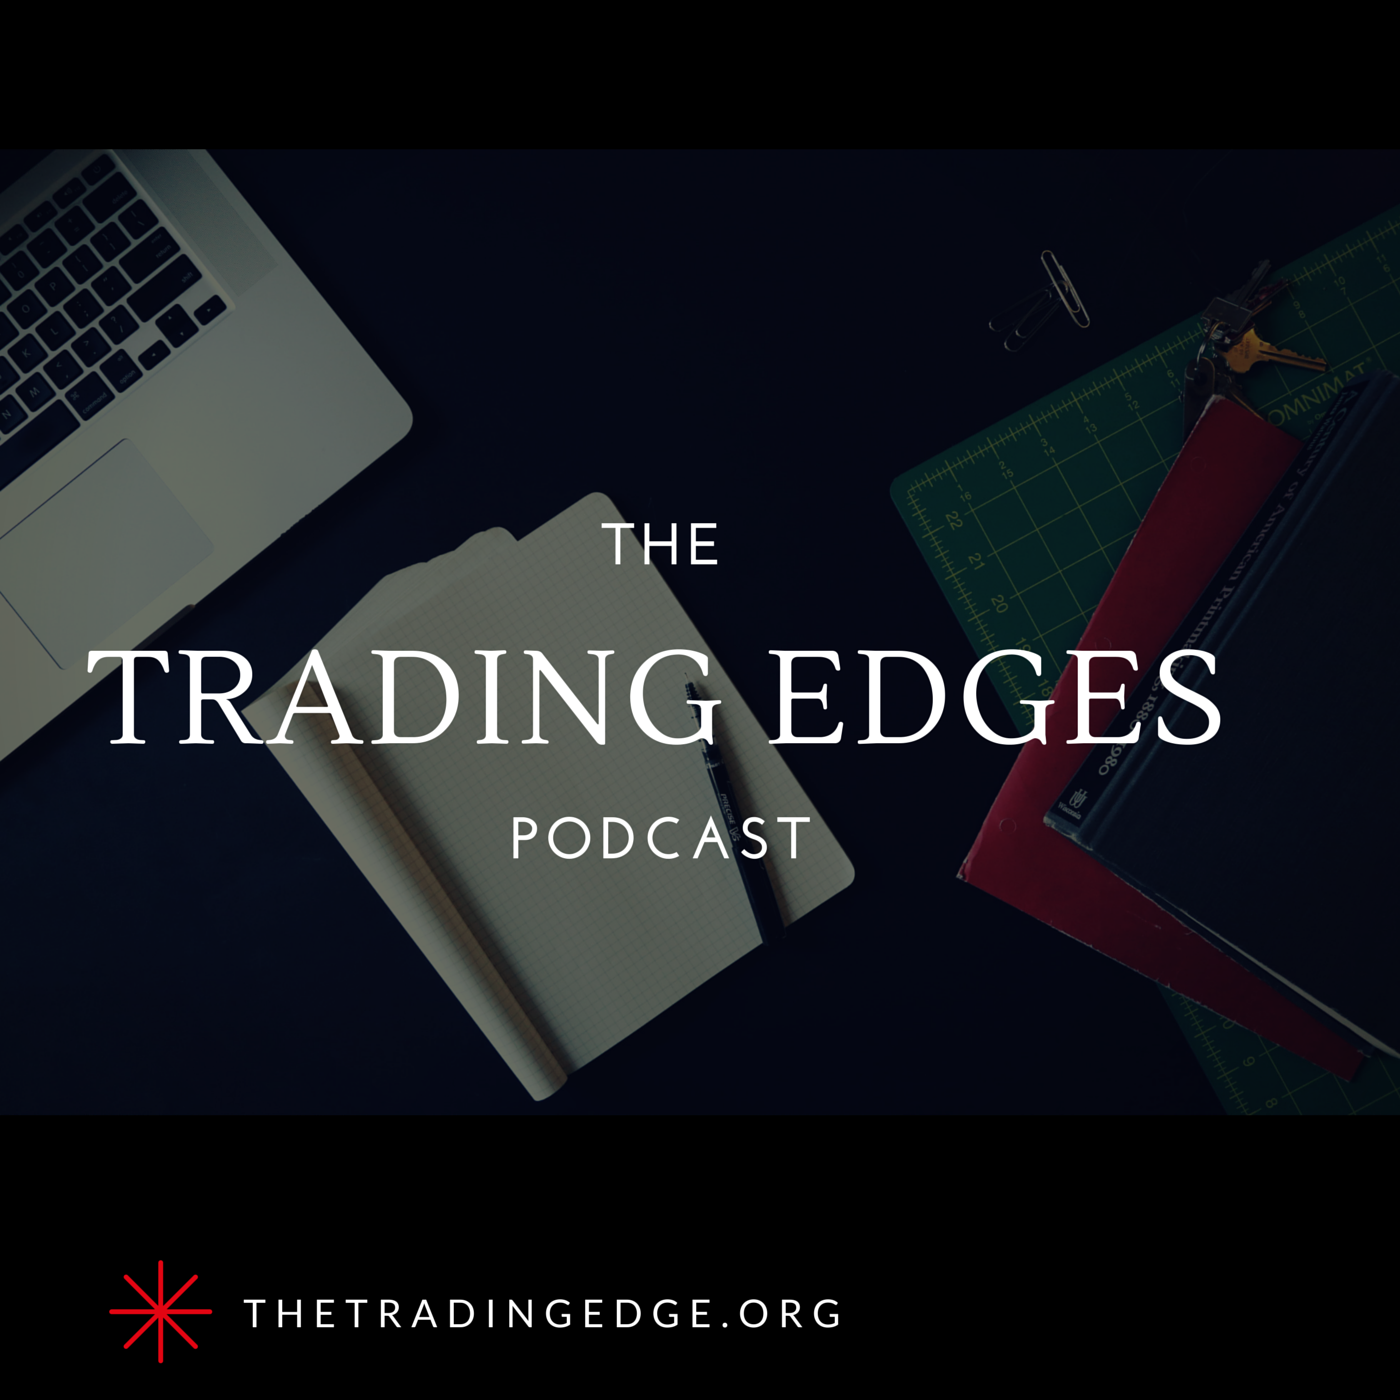 The Trading Edges Podcast